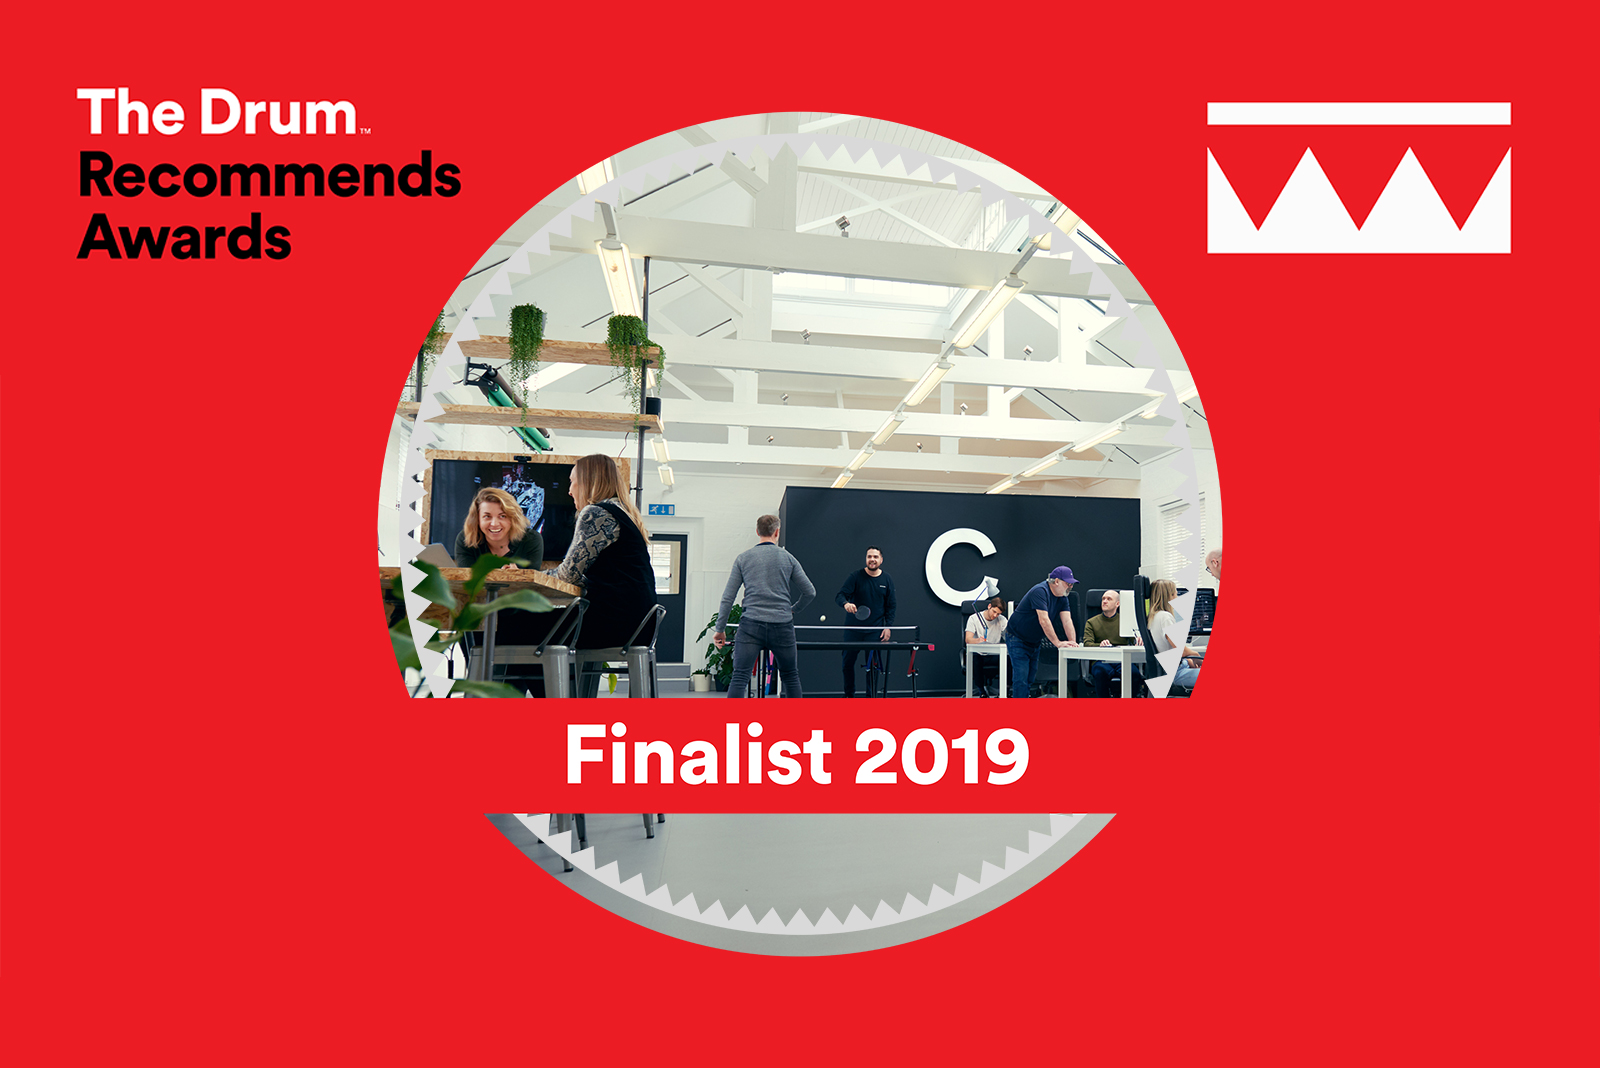 The Drum Recommends Awards - The Canopy Studio Finalist 2019